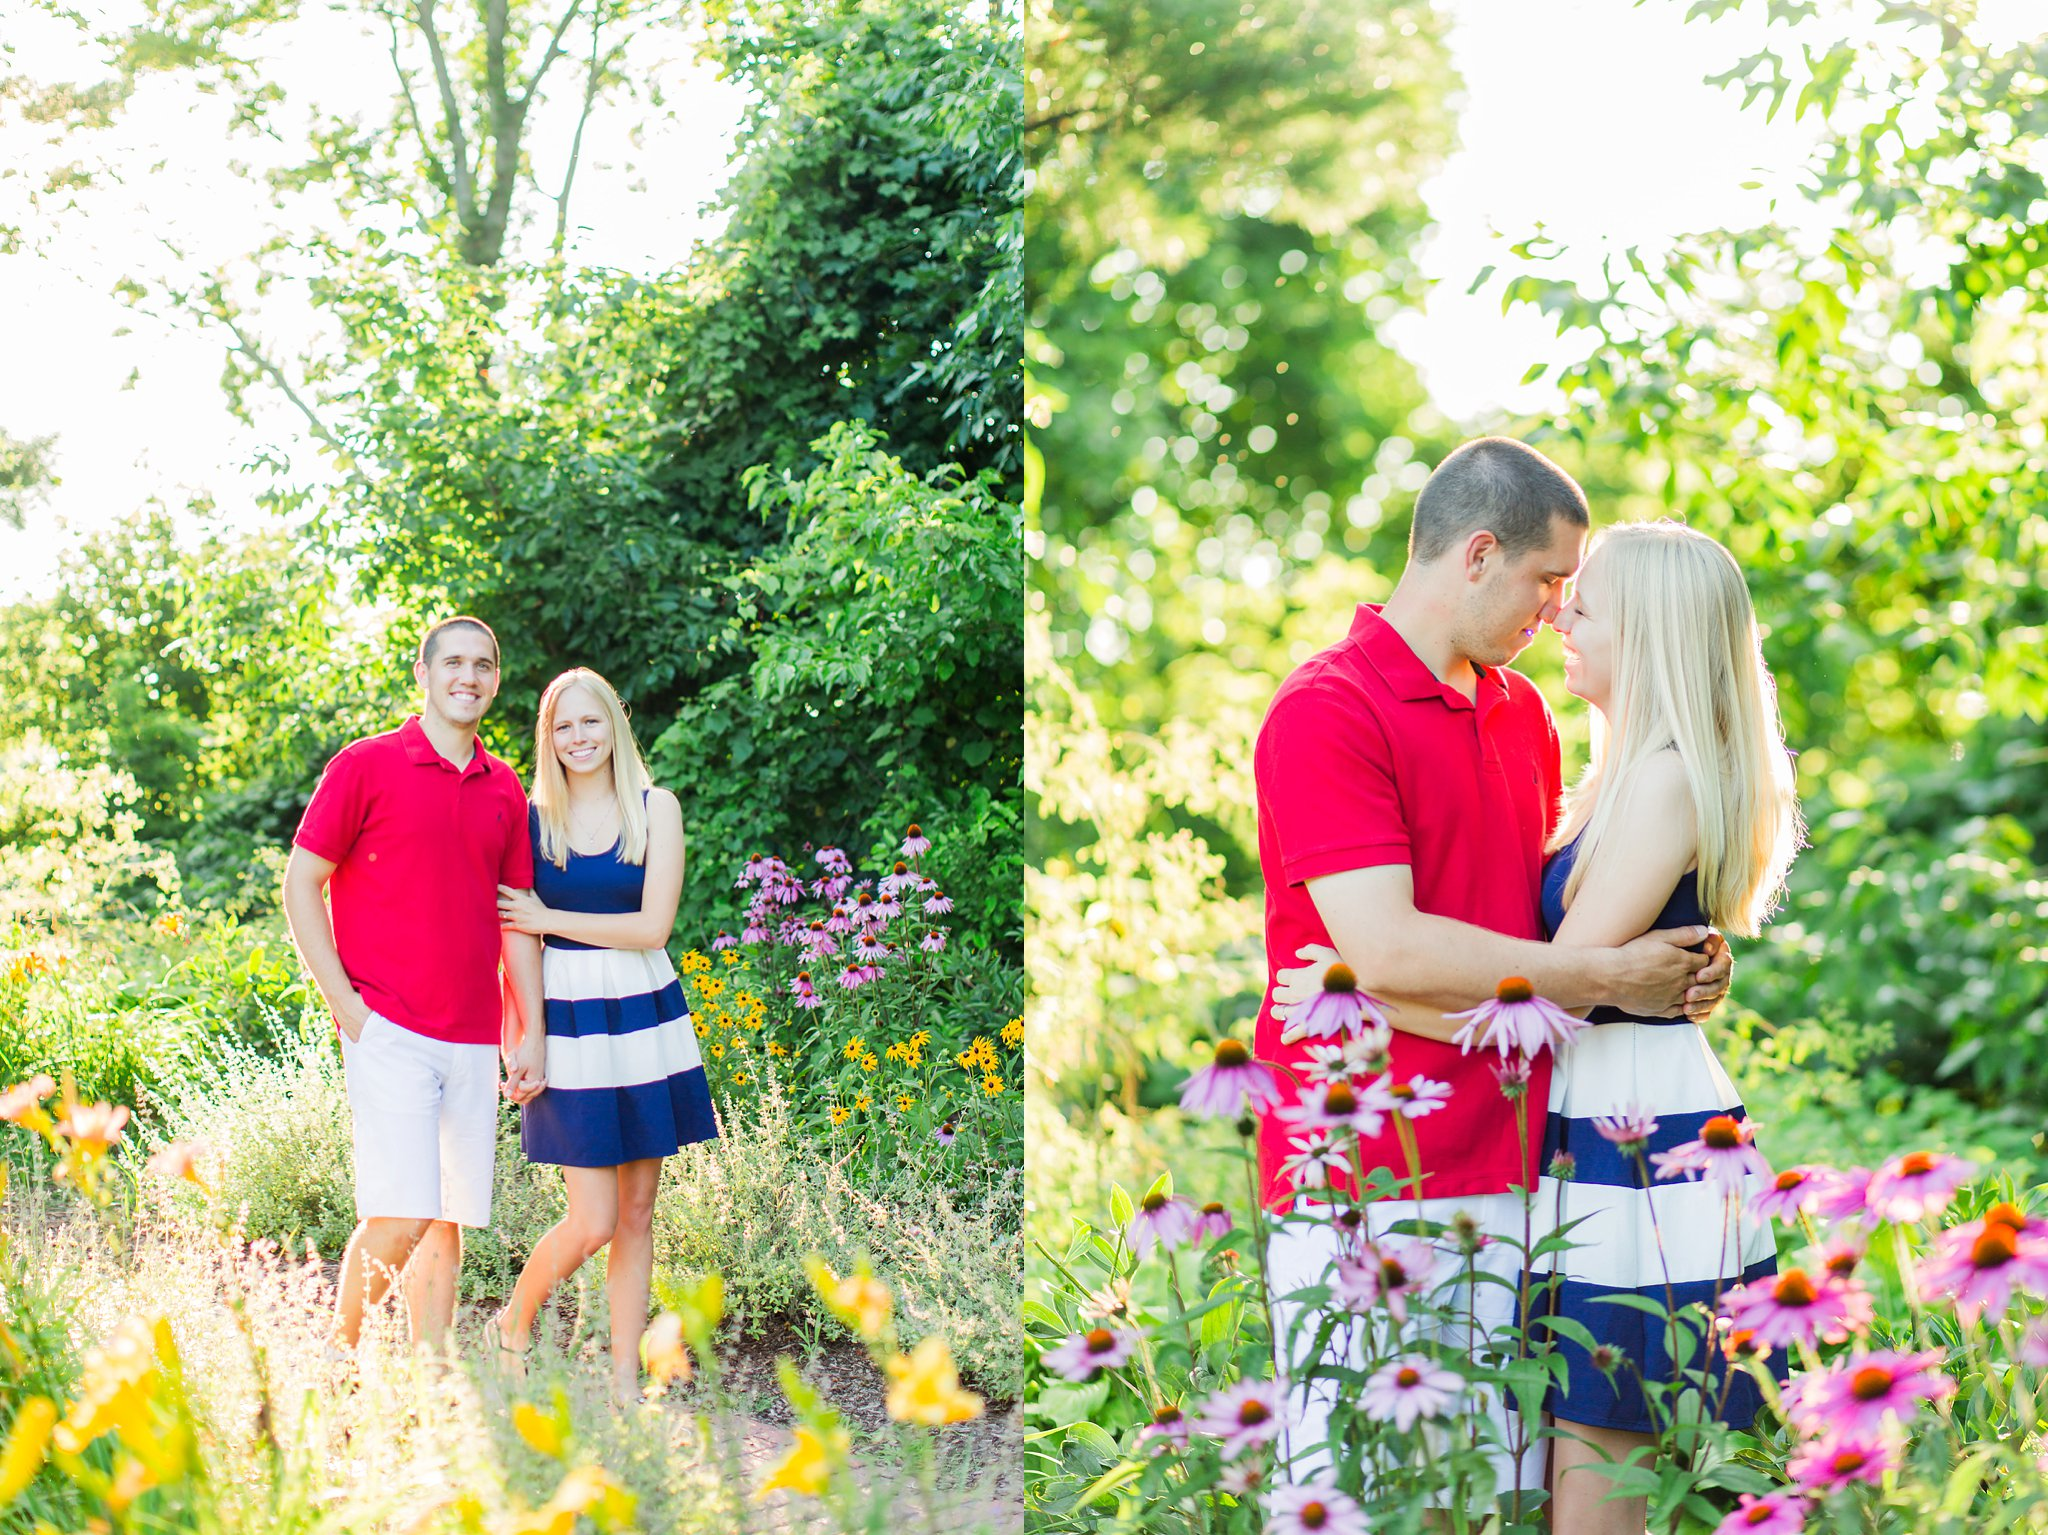 Silver Lake Engagement Photos Michigan Wedding Photographer Megan Kelsey Photography-9752.jpg